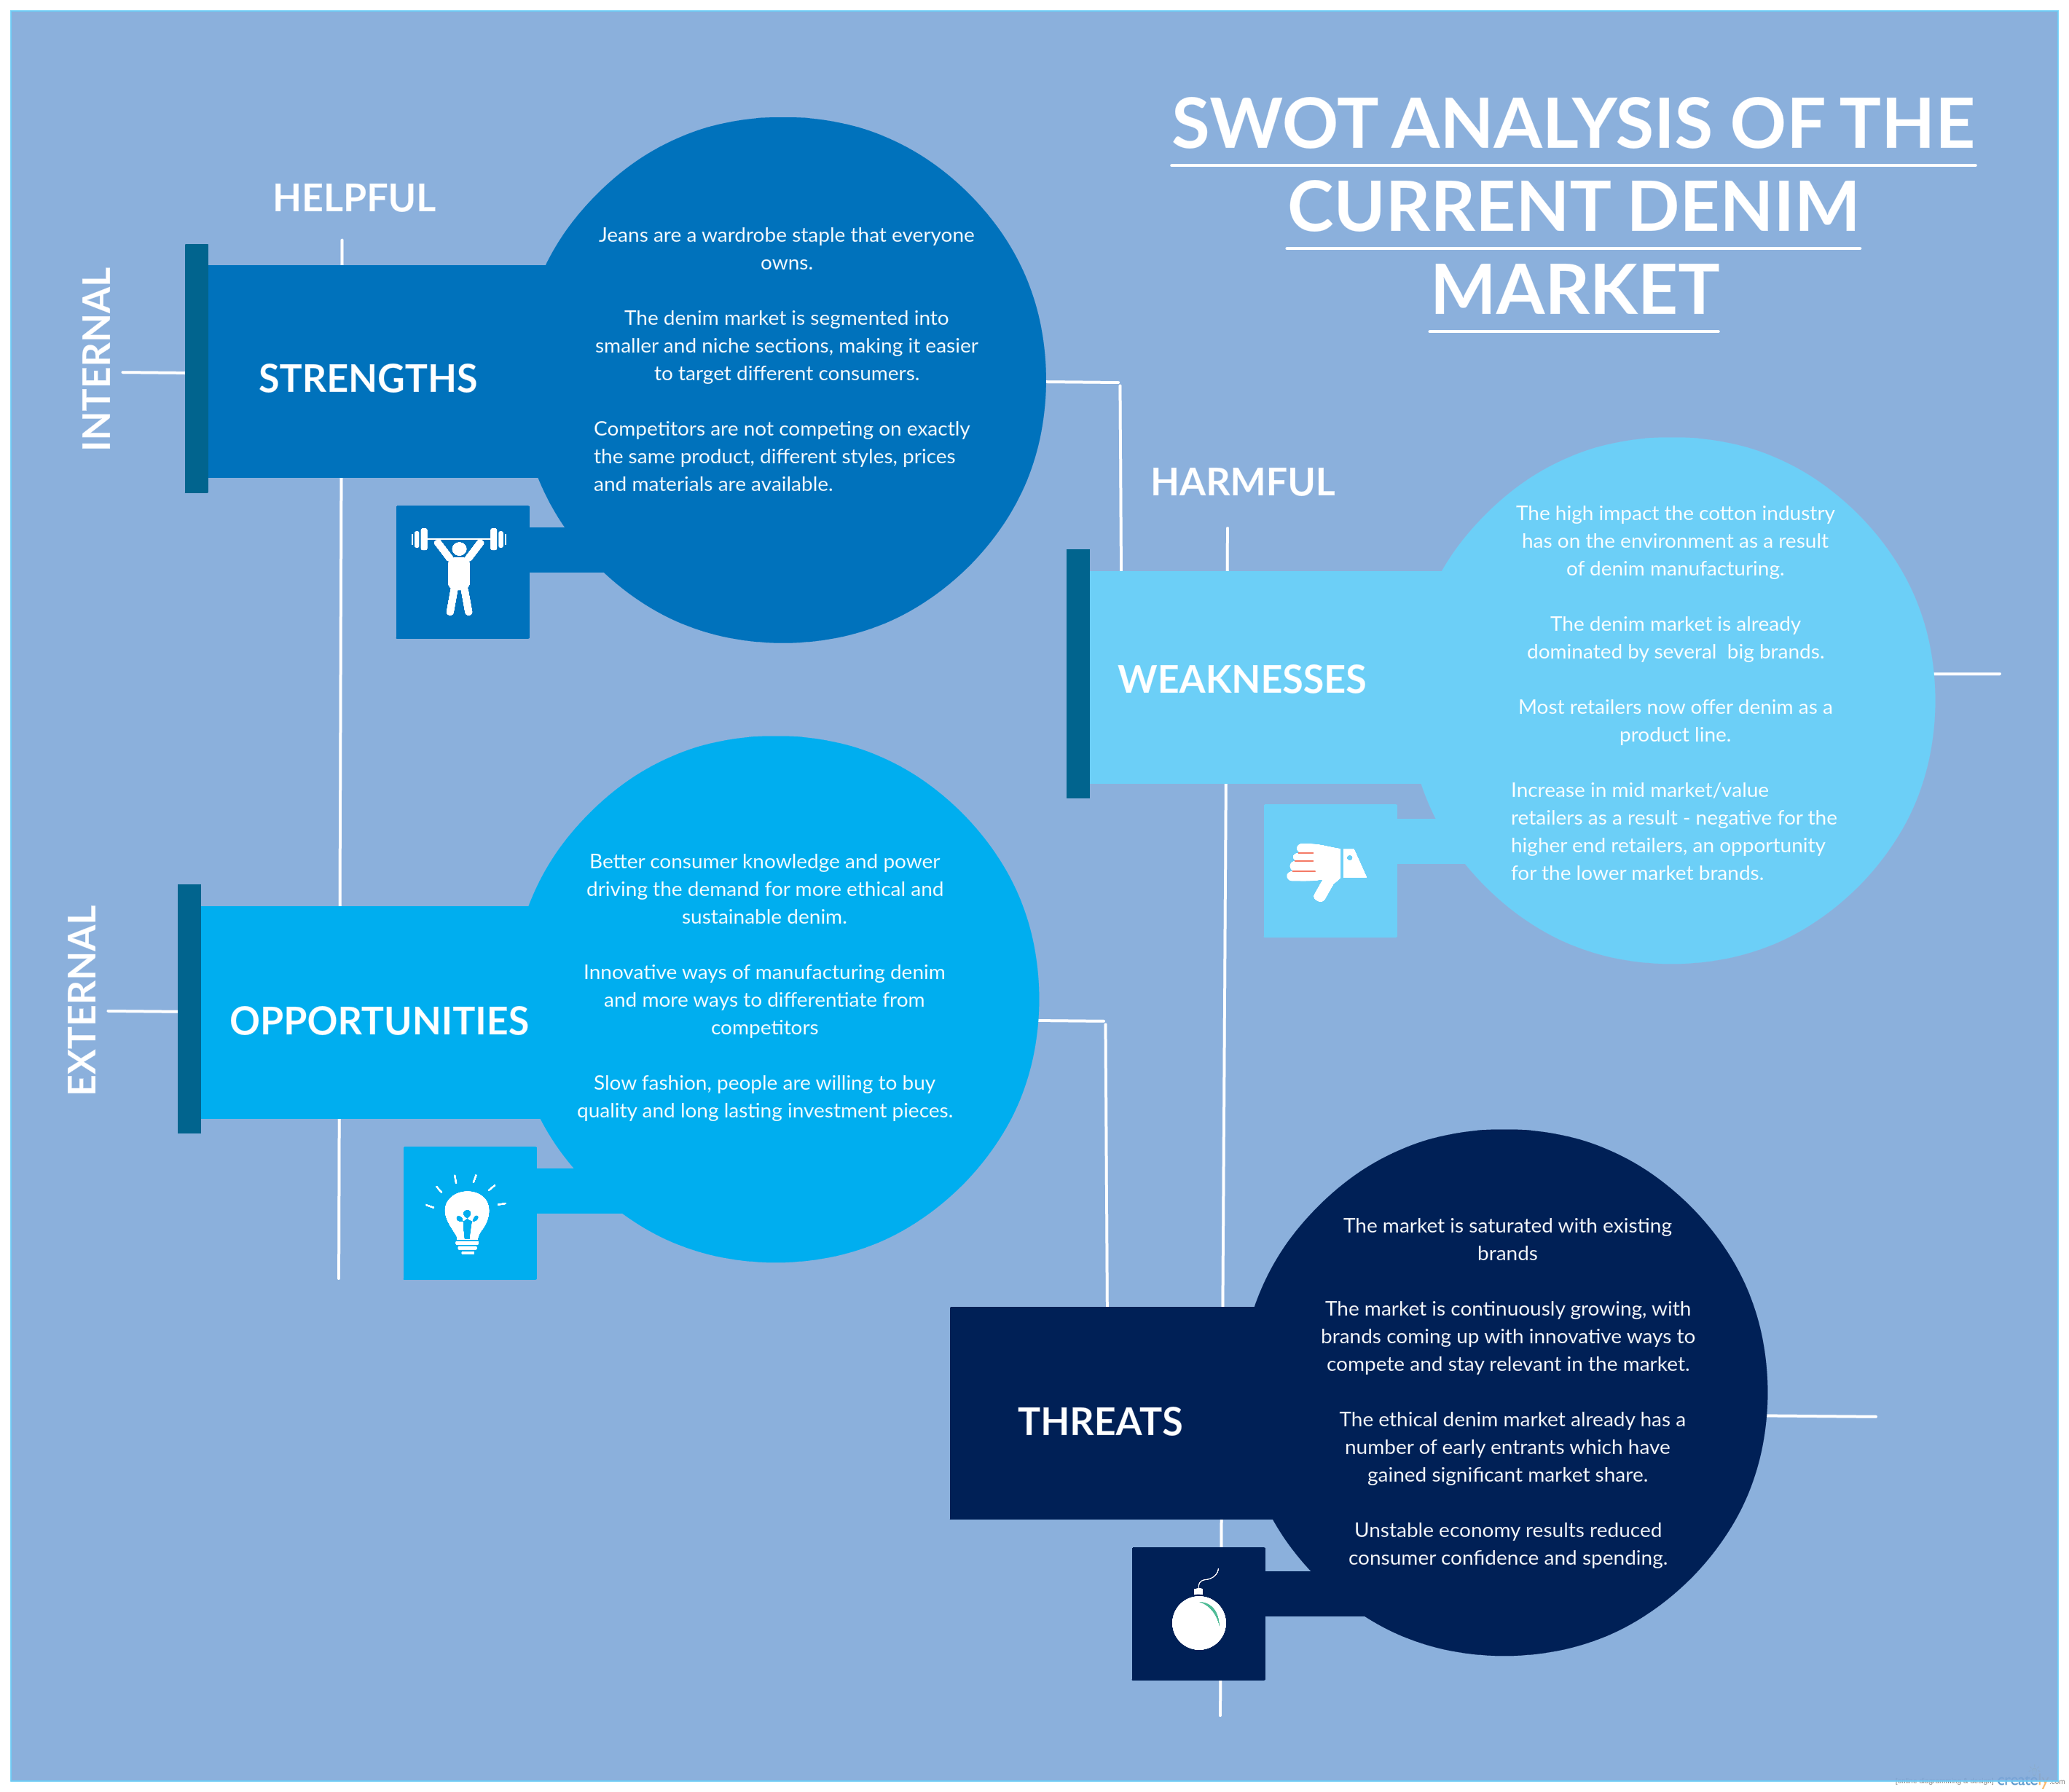 swot analysis of pepe jeans Wrangler swot analysis, usp & competitors posted in lifestyle and retail, total reads: 10669 advertisements swot analysis of wrangler with usp pepe jeans the.